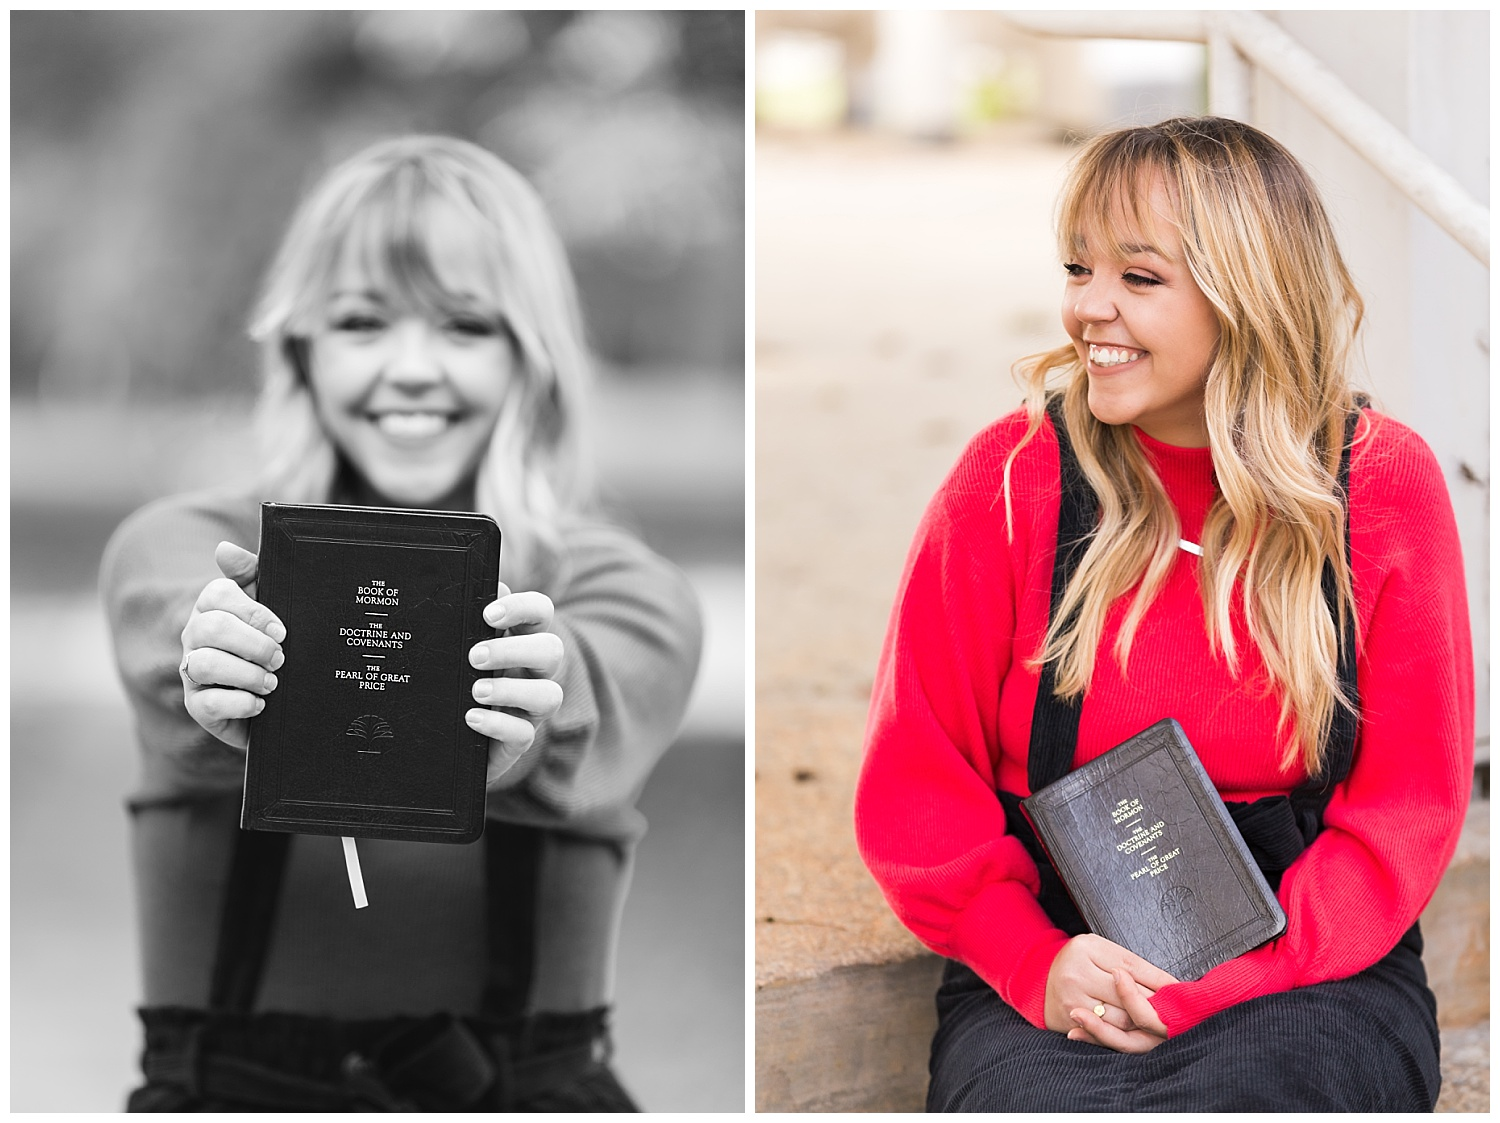 lexie book of mormon missionary photos lbeesleyphoto